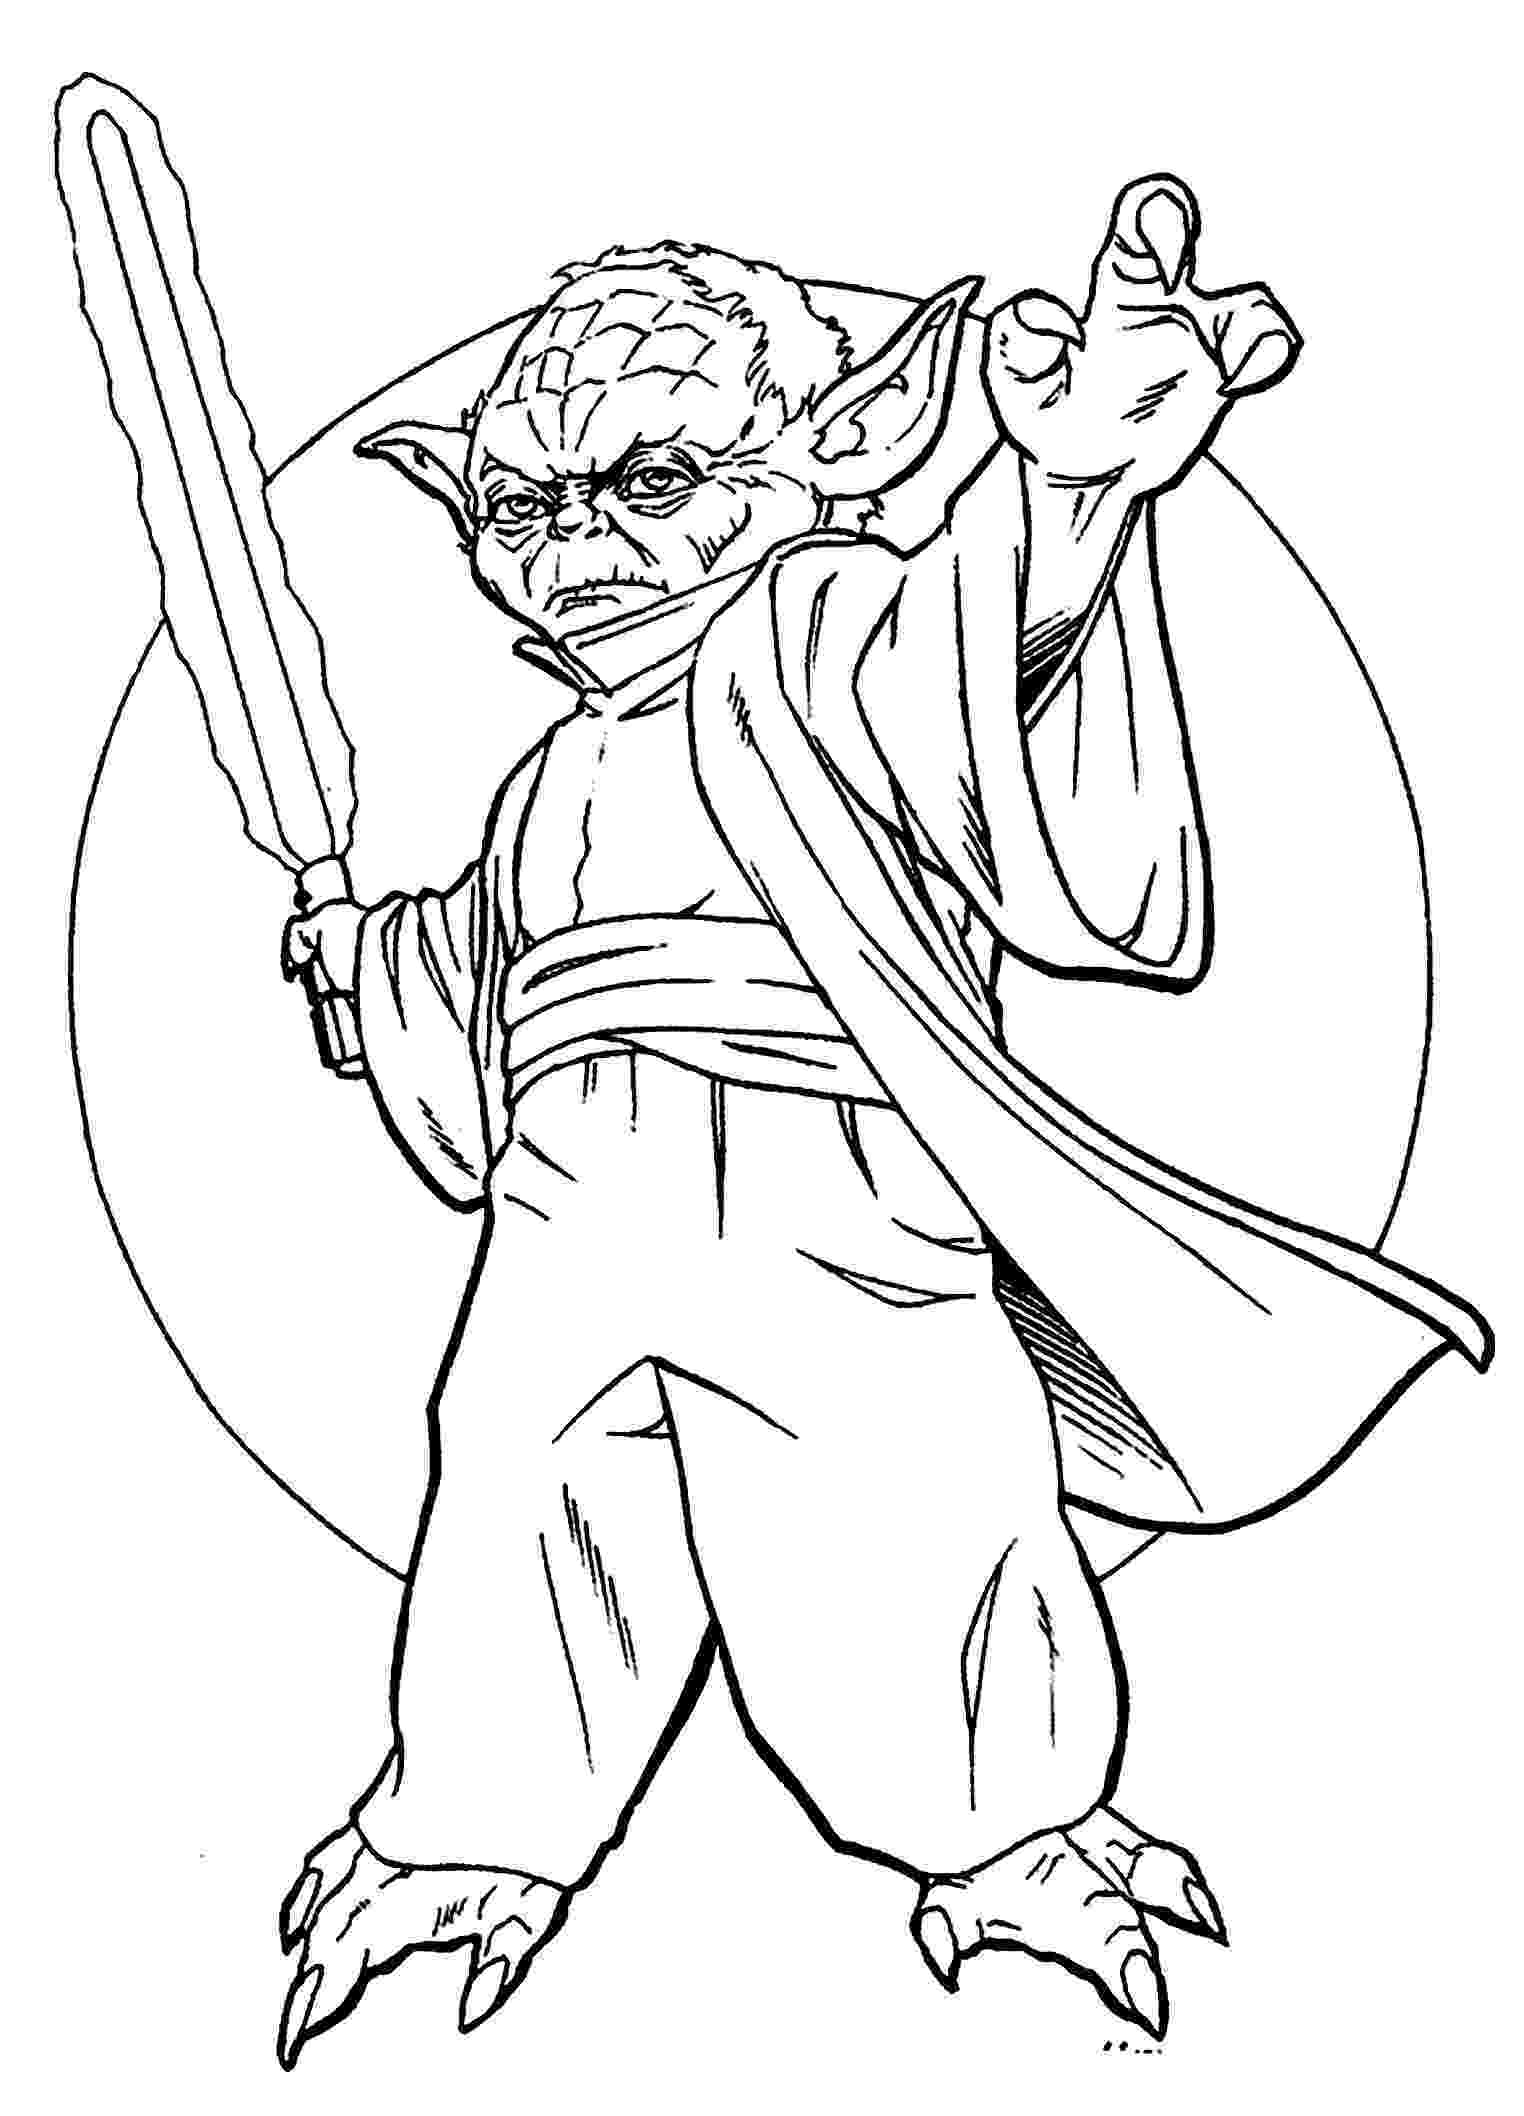 starwars colouring free printable star wars coloring pages free printable starwars colouring